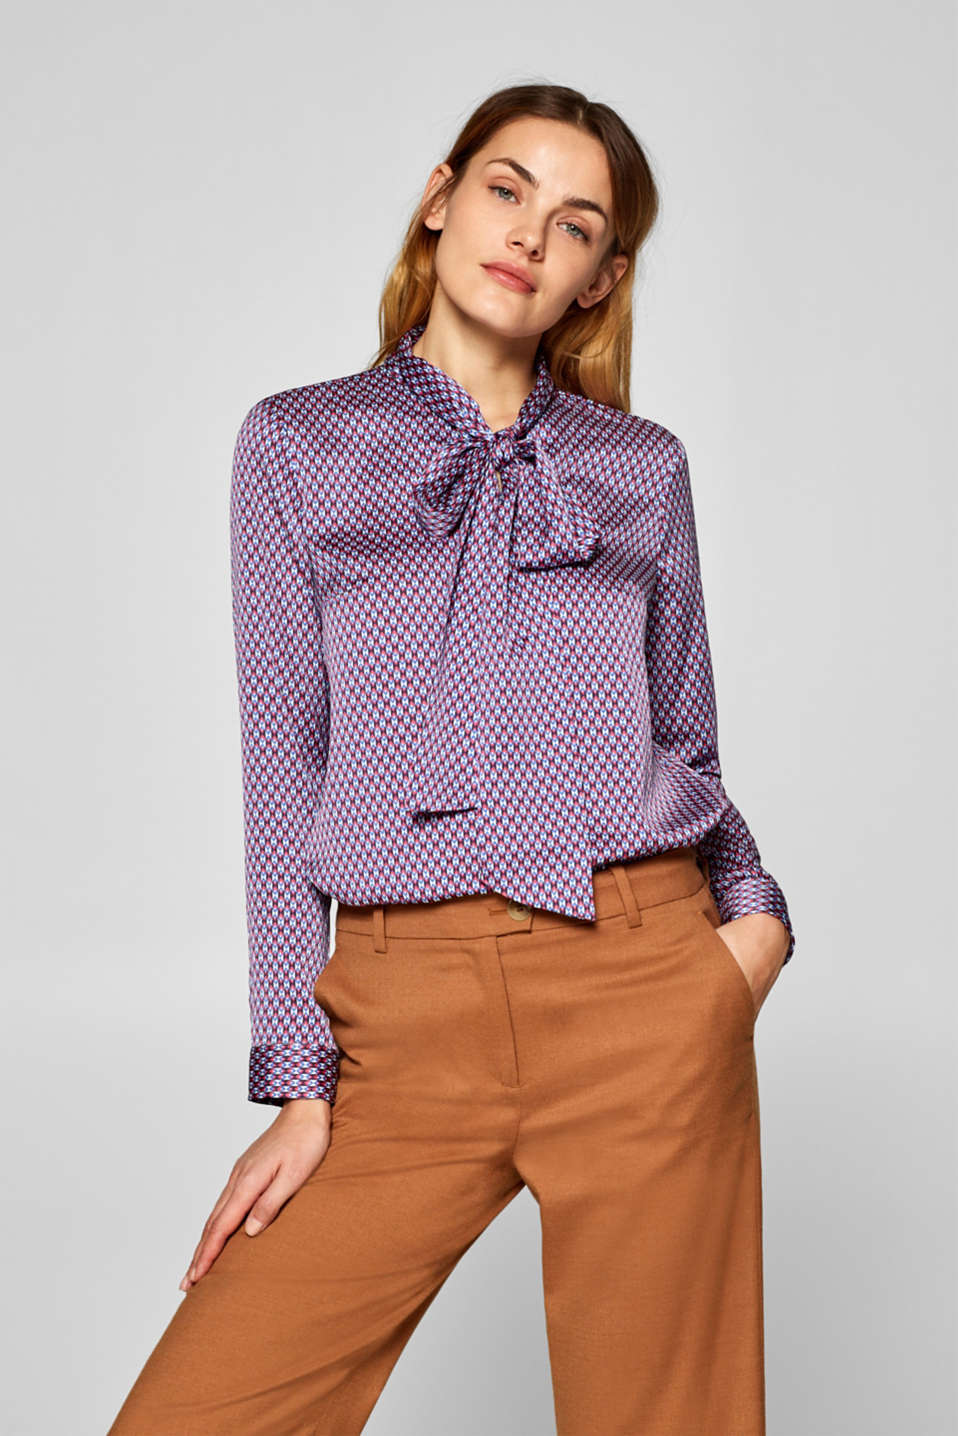 Esprit - Printed blouse with neck ties